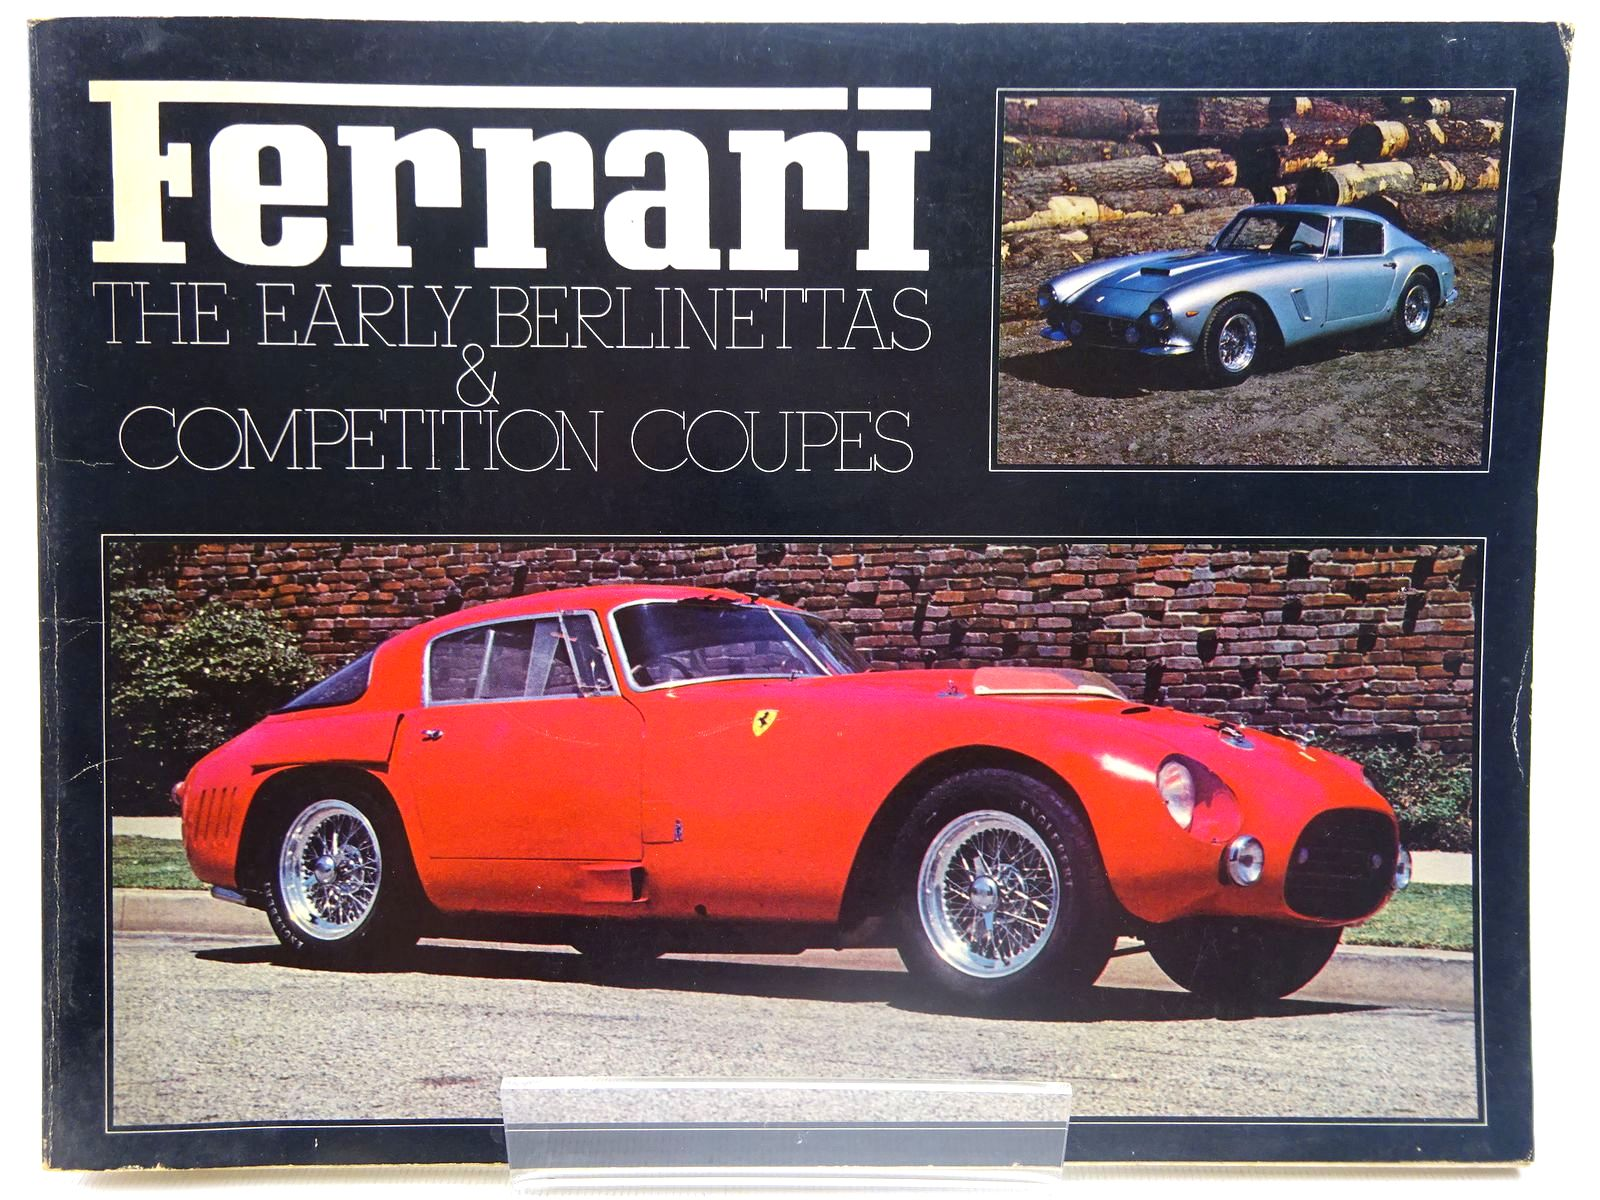 Photo of FERRARI THE EARLY BERLINETTAS & COMPETITION COUPES written by Batchelor, Dean et al, published by Dean Batchelor Publications (STOCK CODE: 2127223)  for sale by Stella & Rose's Books